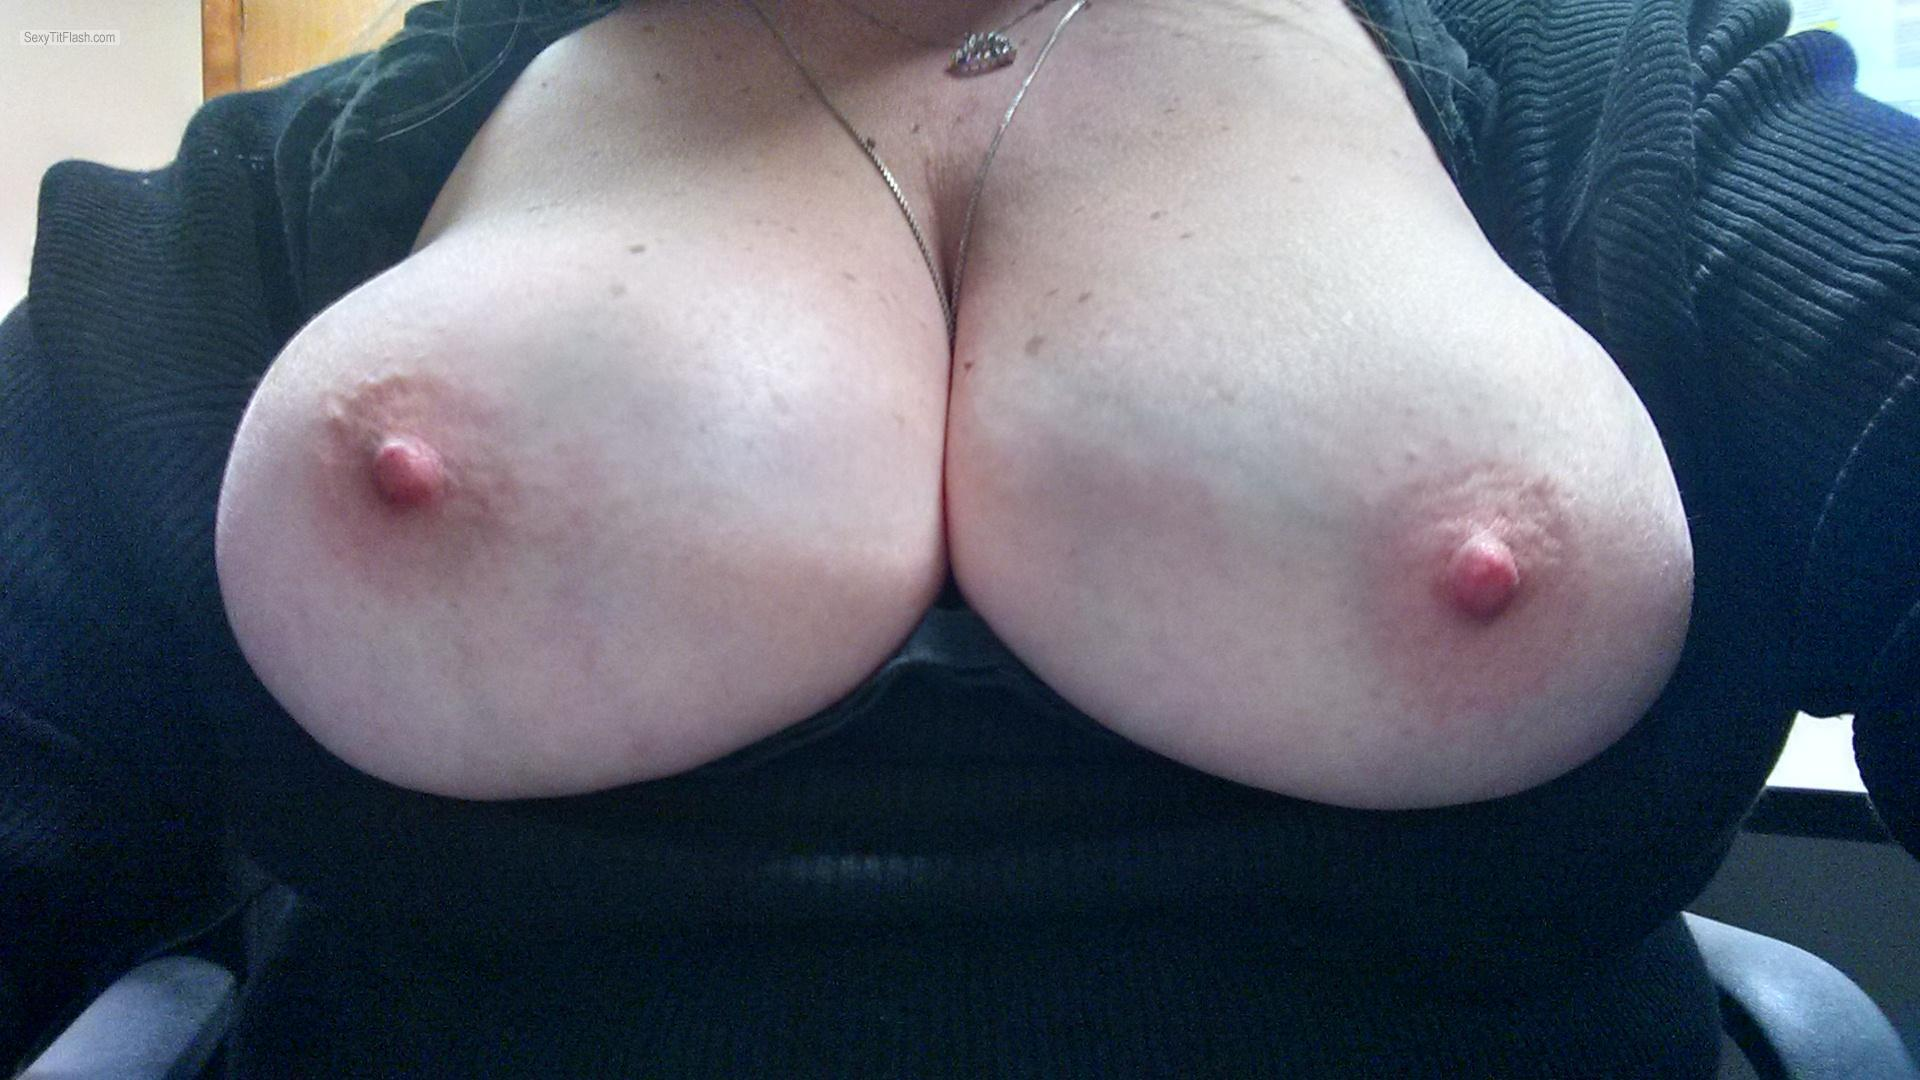 Tit Flash: My Big Tits (Selfie) - Willow from United States